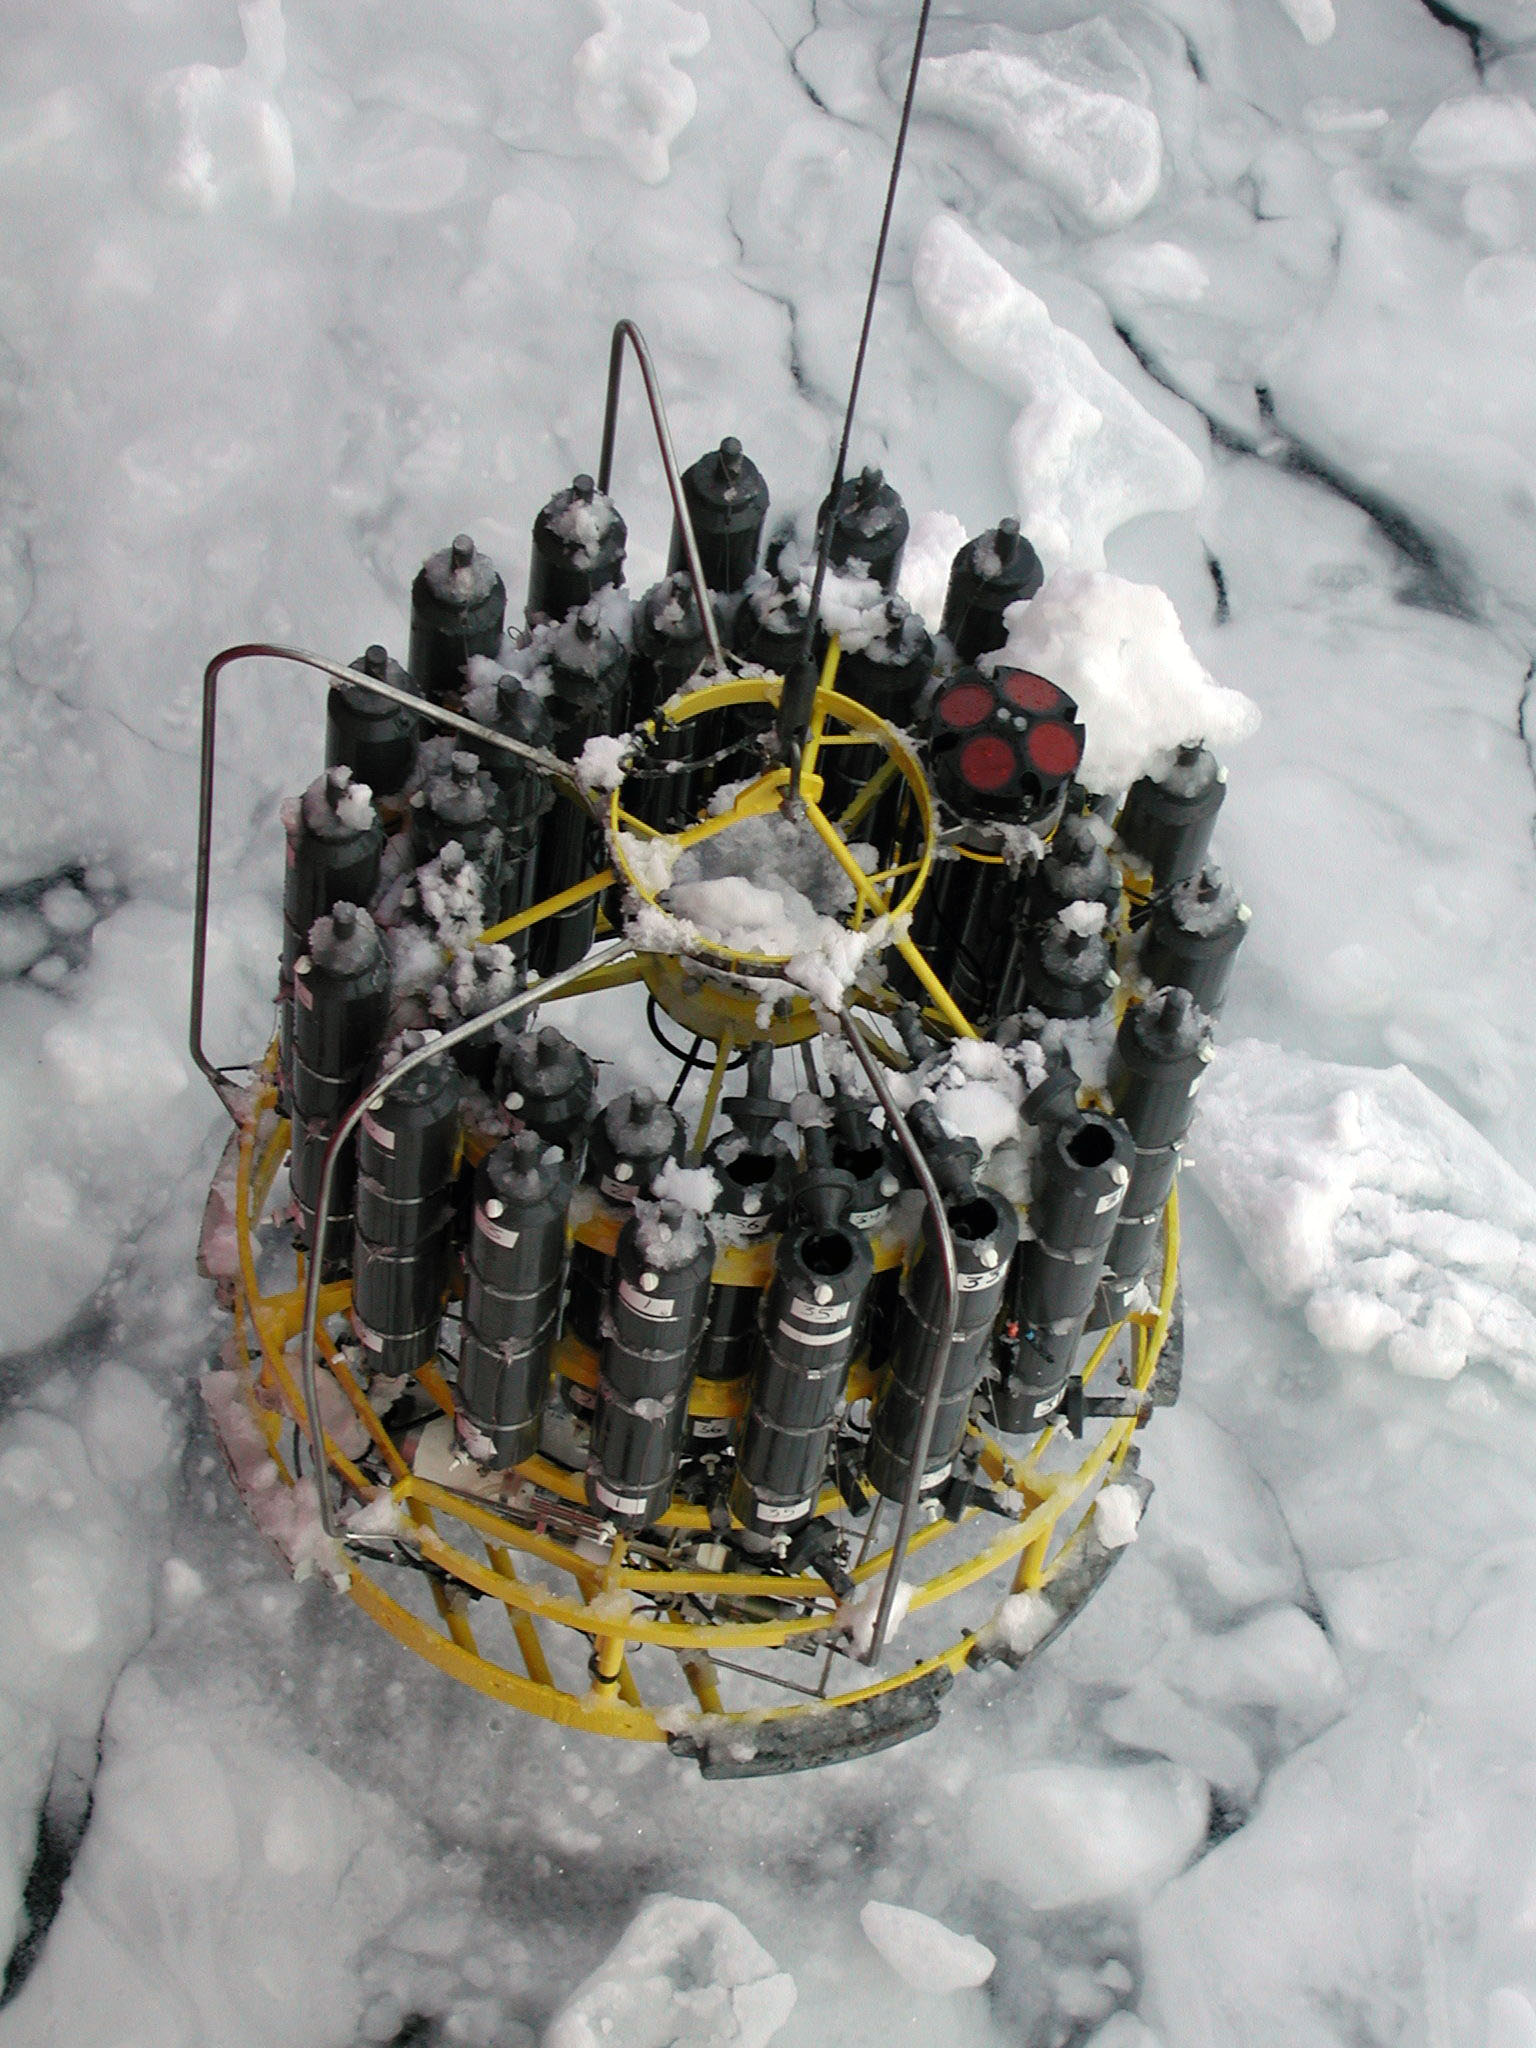 CTD emergin through the ice